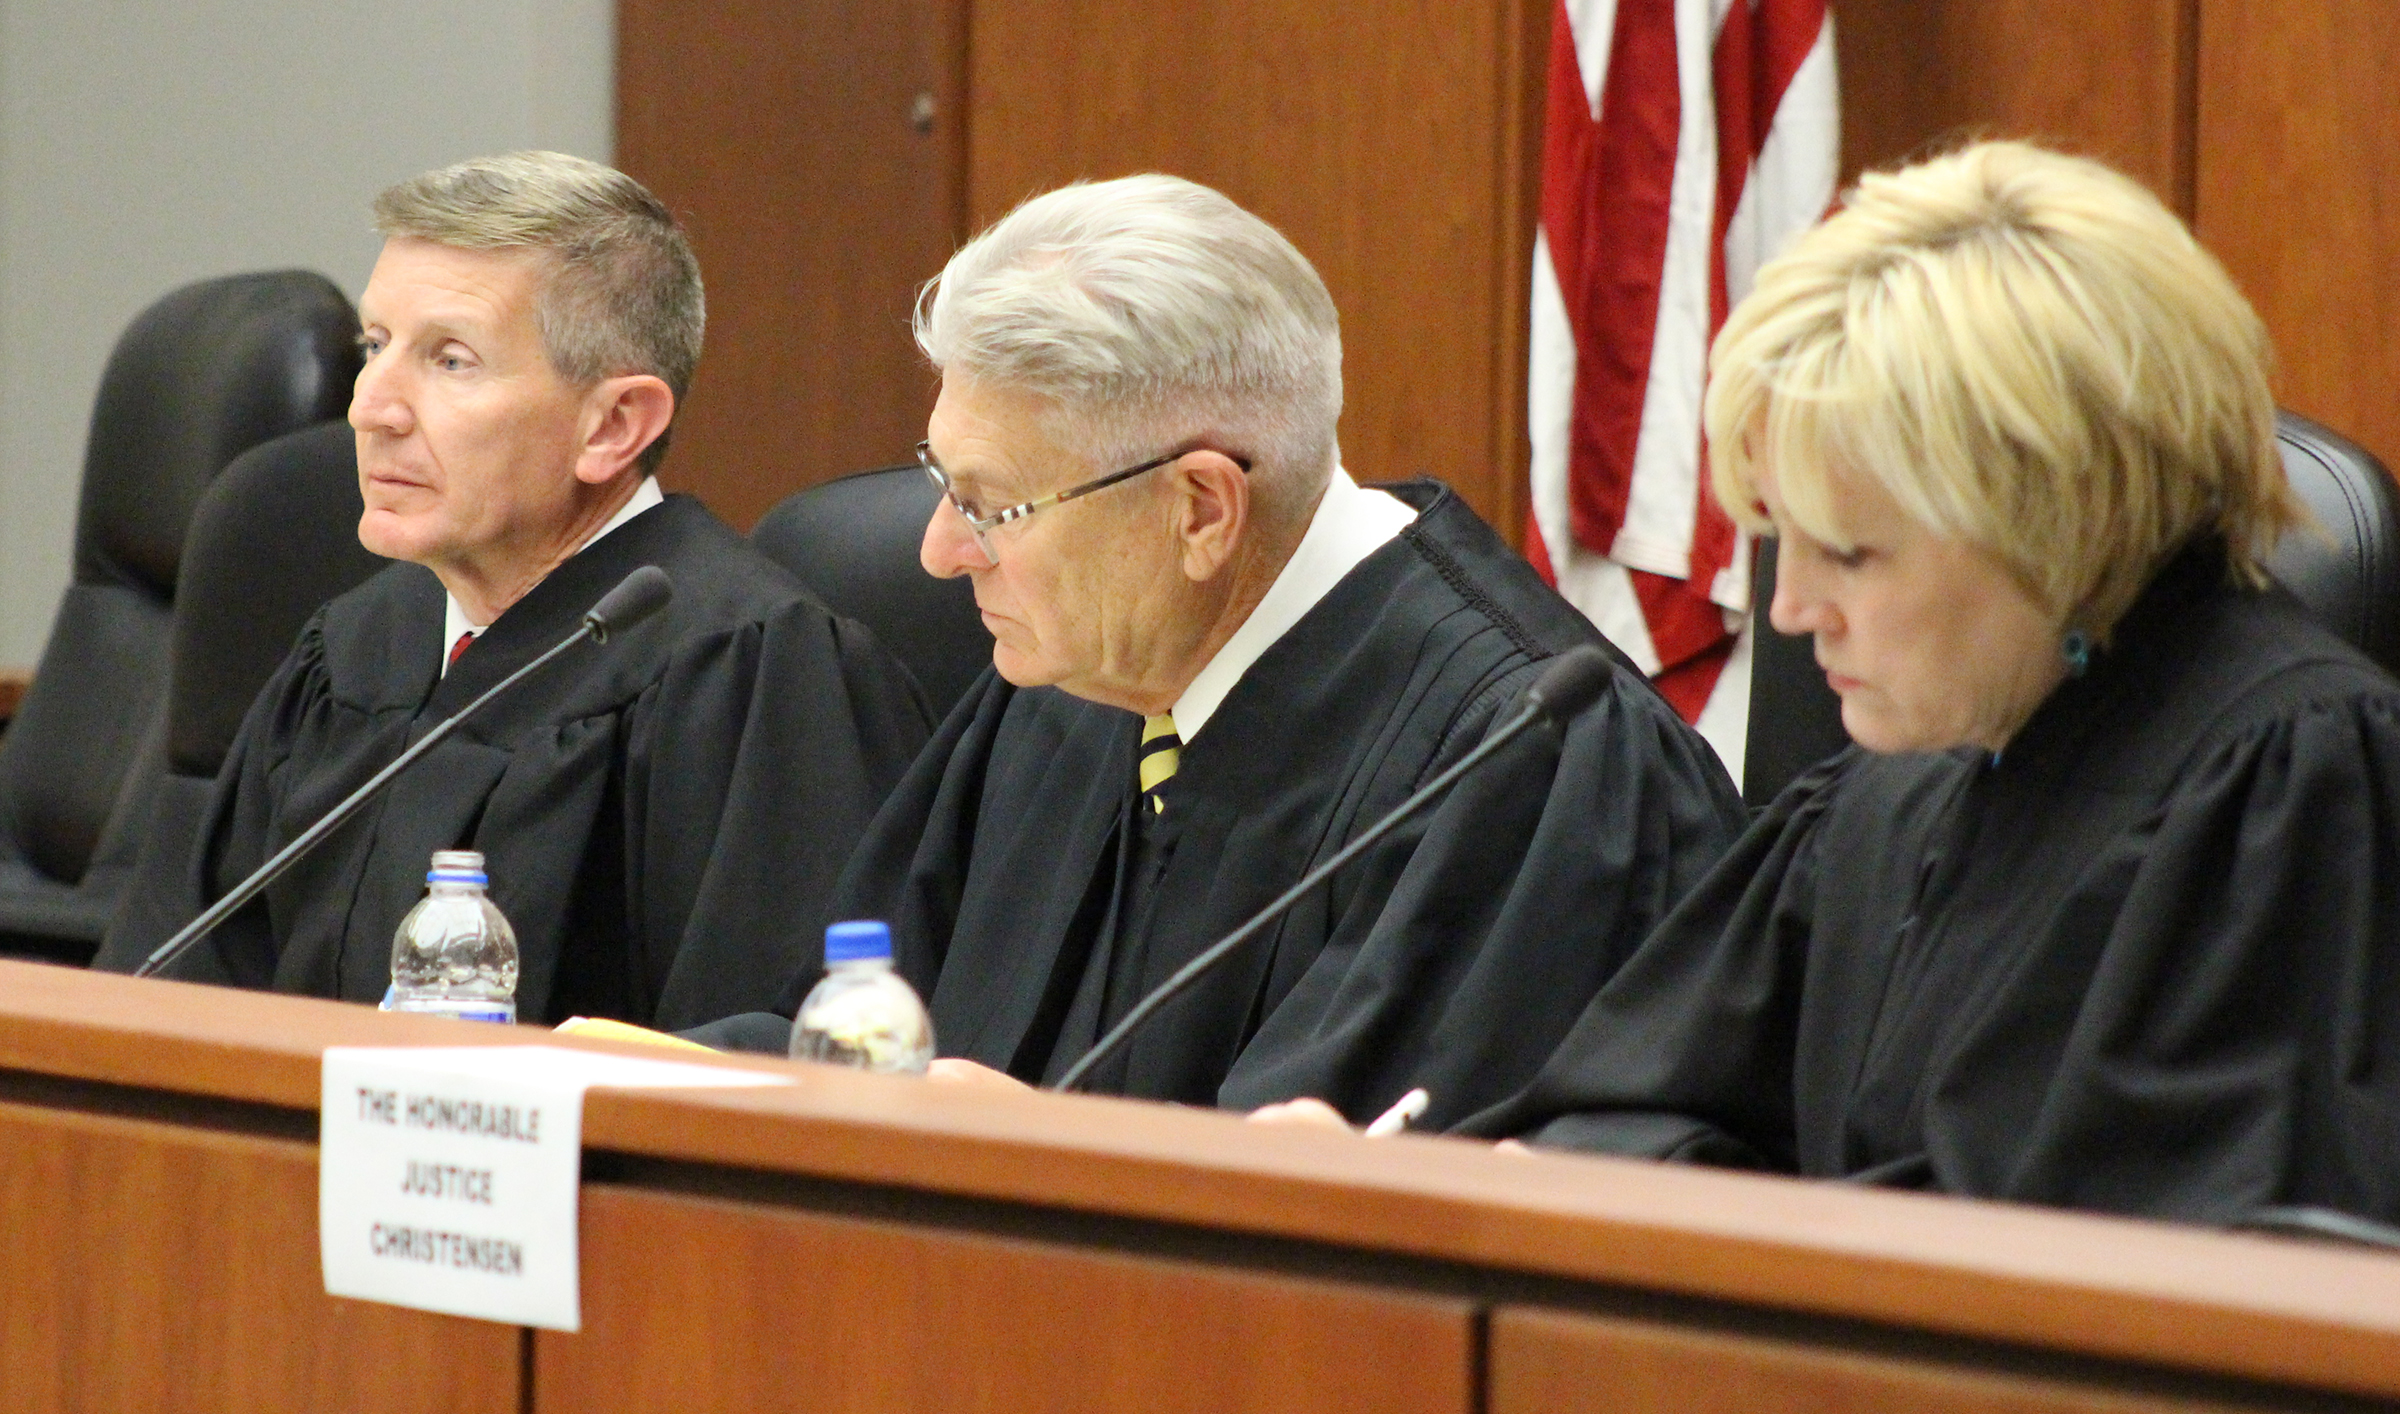 From left, U.S. Eighth Circuit Court of Appeals Judge Steven Grasz, Nebraska Supreme Court Chief Justice Michael Heavican and Iowa Supreme Court Justice Susan Christensen sit to hear the final round of the moot court competition. (Photo by Scott Stewart)